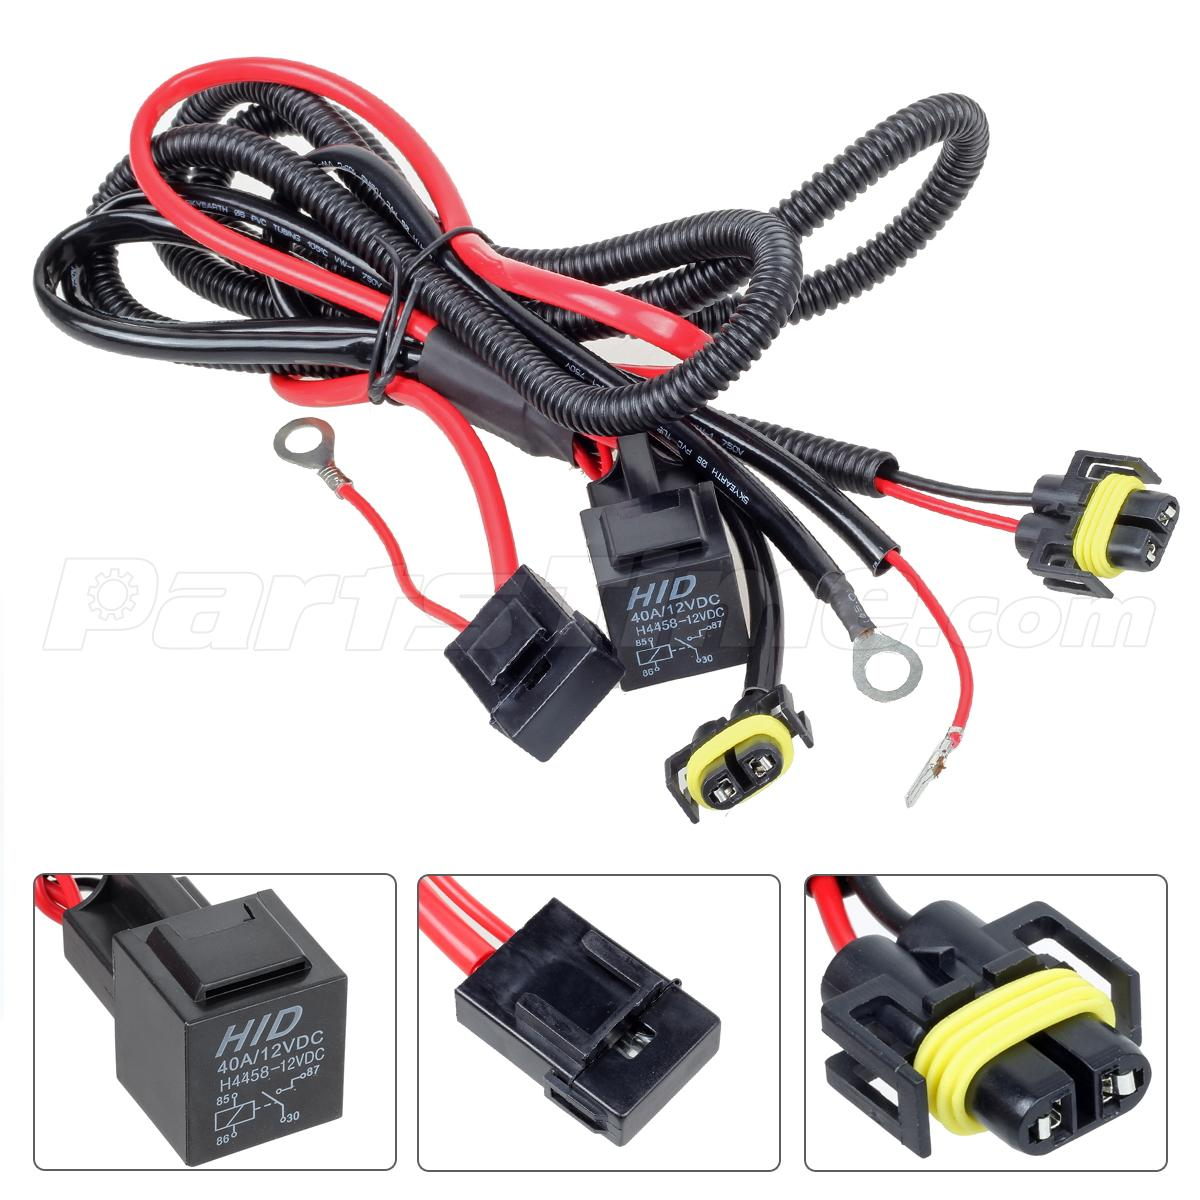 880 h11 hid xenon conversion kit relay wire harness for. Black Bedroom Furniture Sets. Home Design Ideas